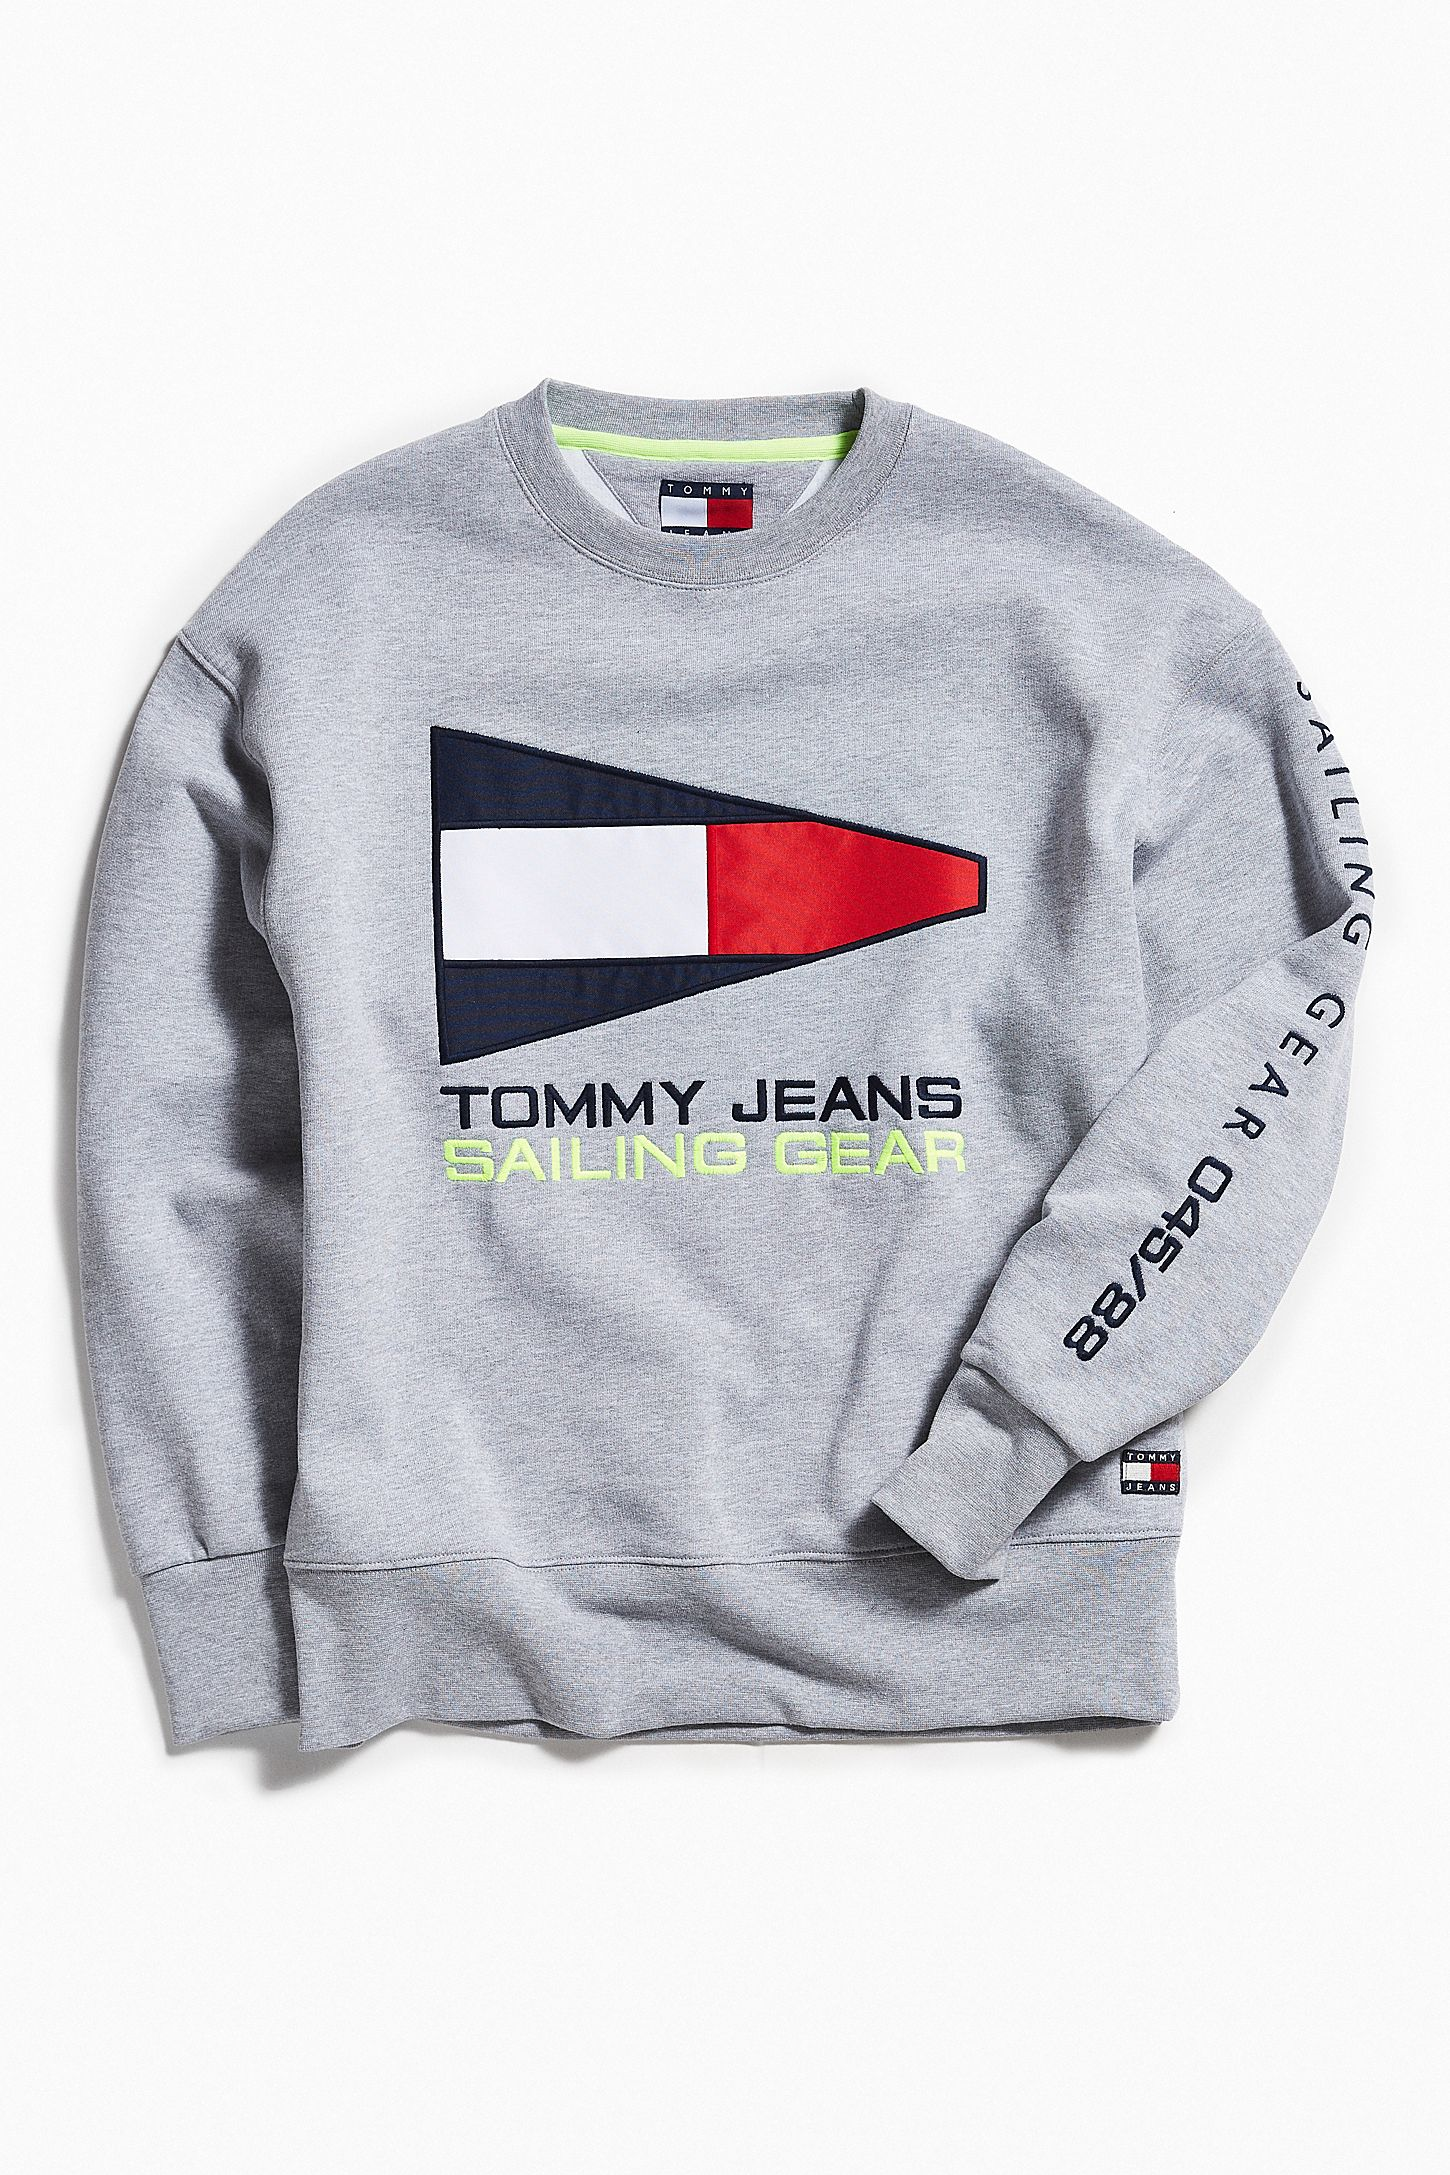 Tommy Jeans  90s Sailing Crew Neck Sweatshirt   Urban Outfitters 54bbe495eb